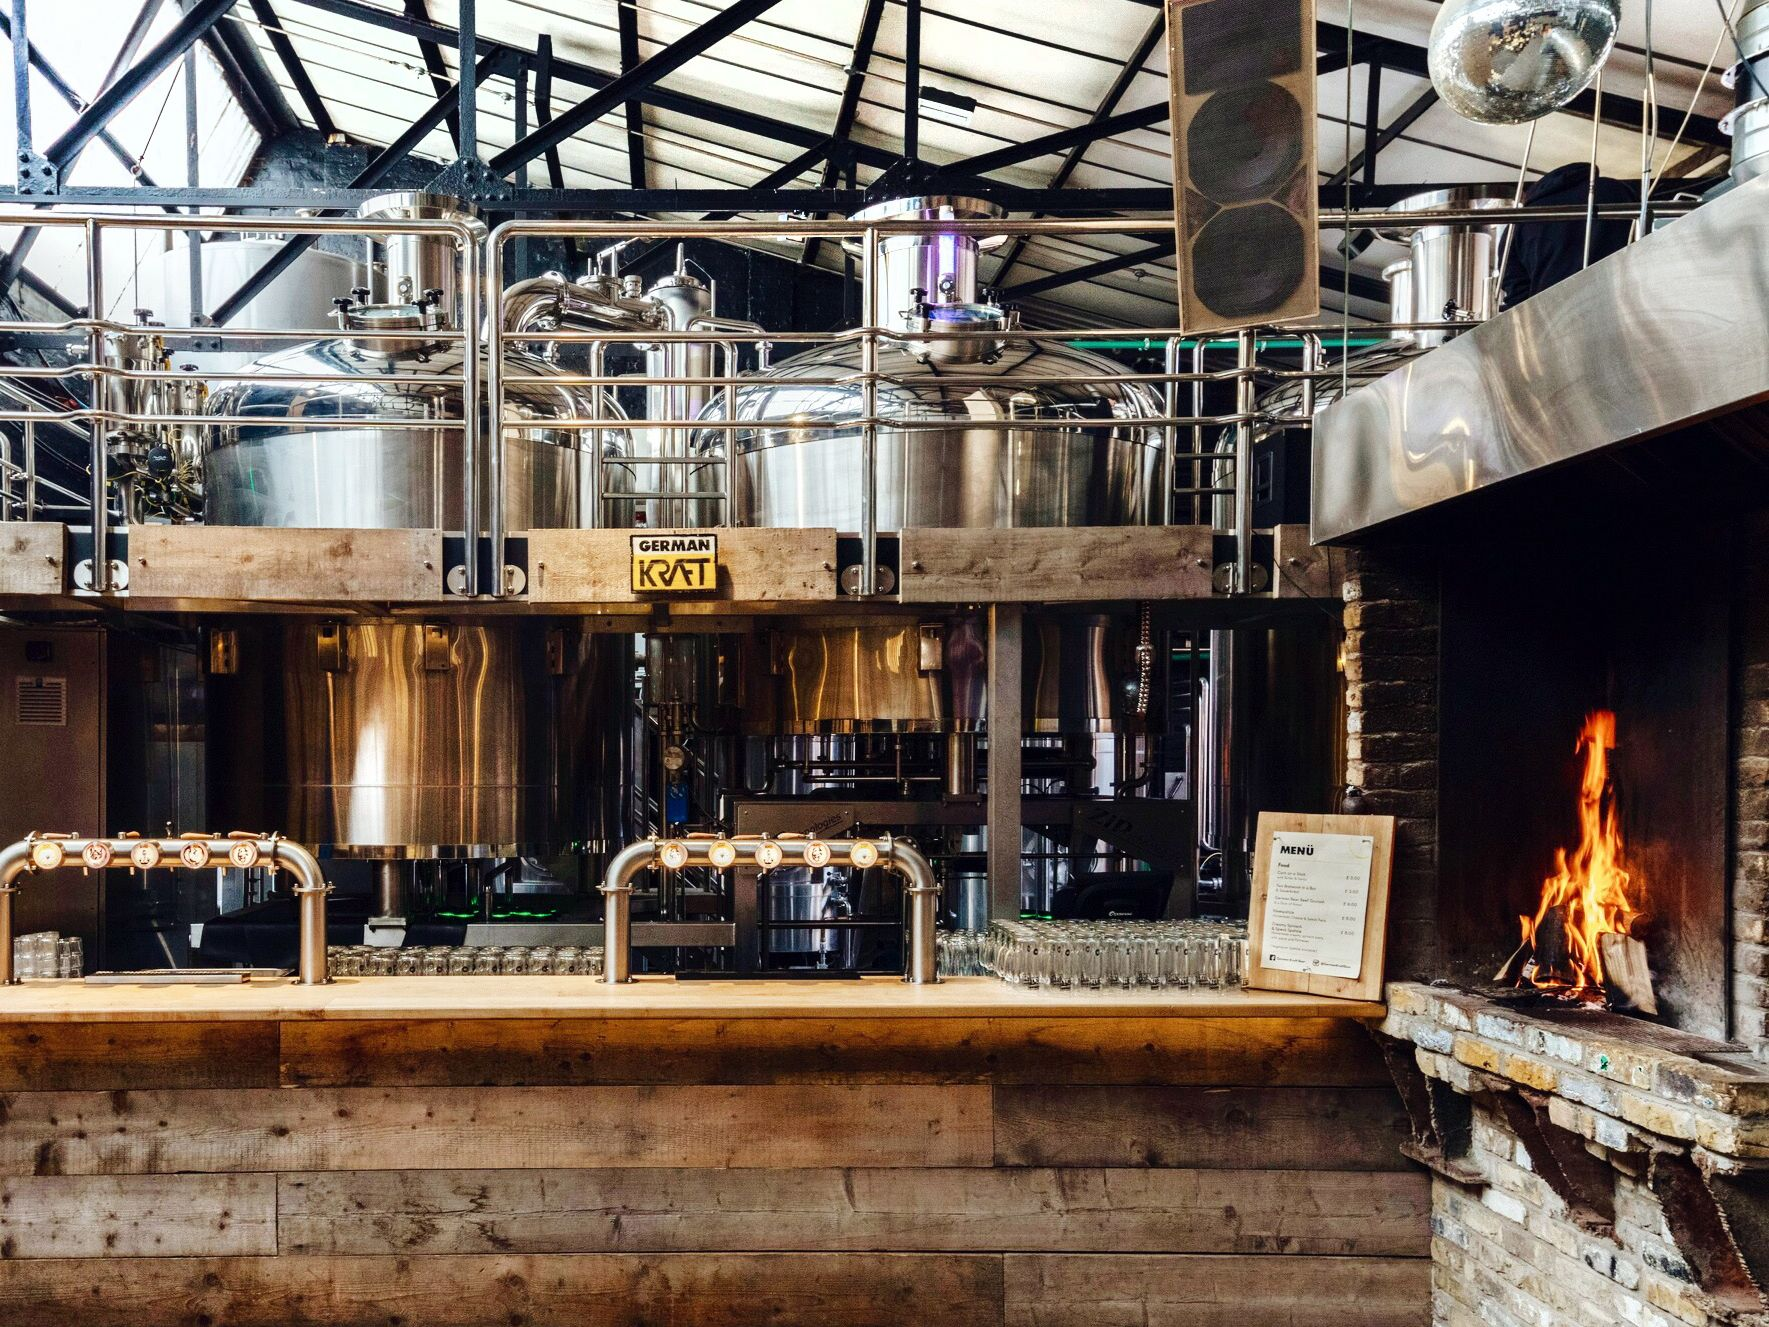 Interior view of a craft brewery.